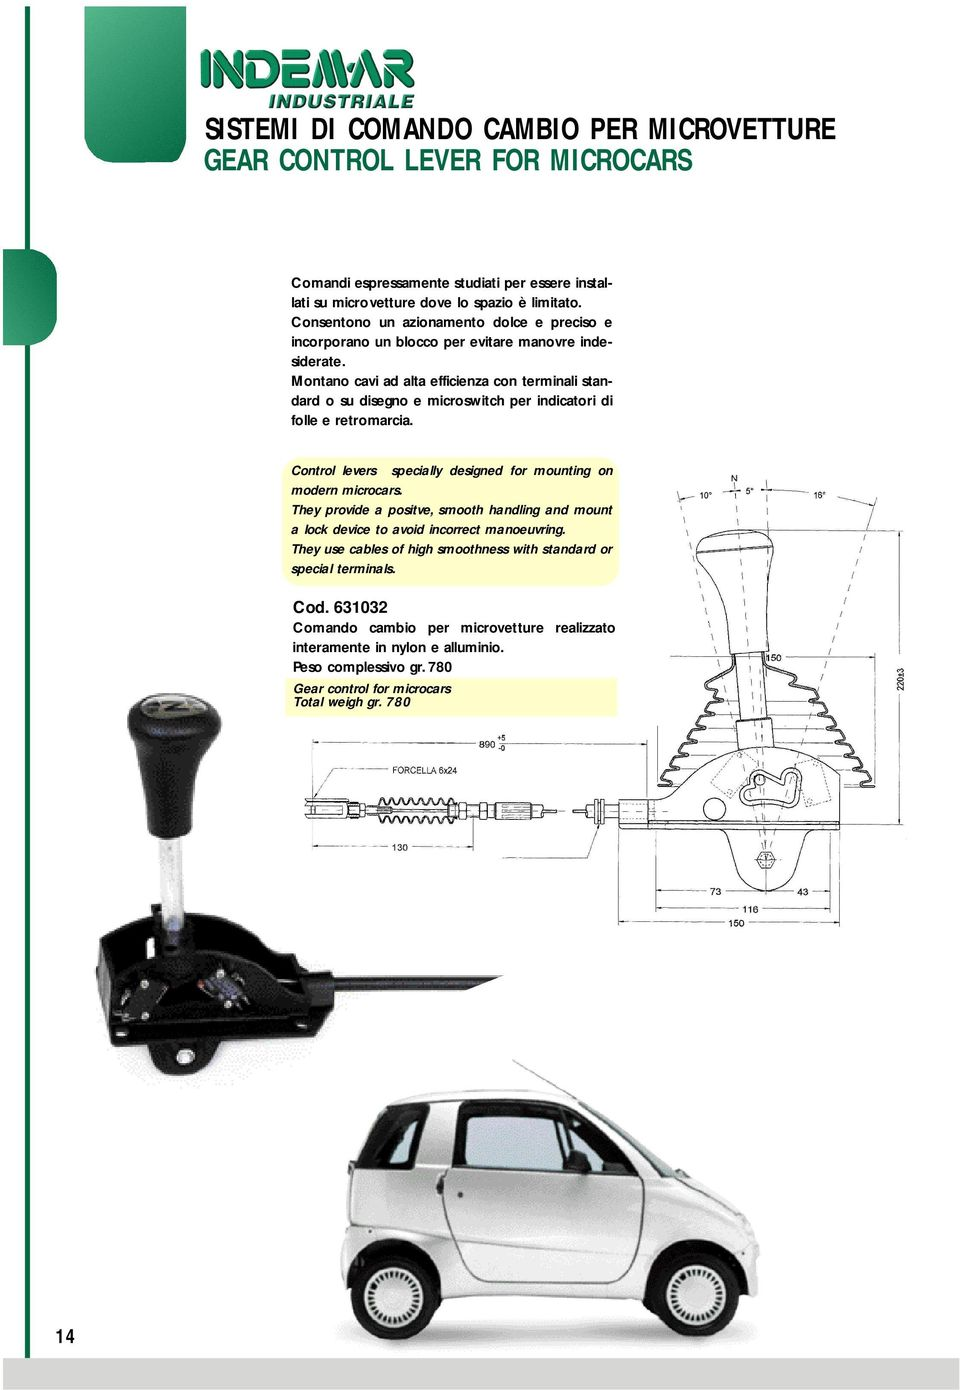 Montano cavi ad alta efficienza con terminali standard o su disegno e microswitch per indicatori di folle e retromarcia. Control levers specially designed for mounting on modern microcars.